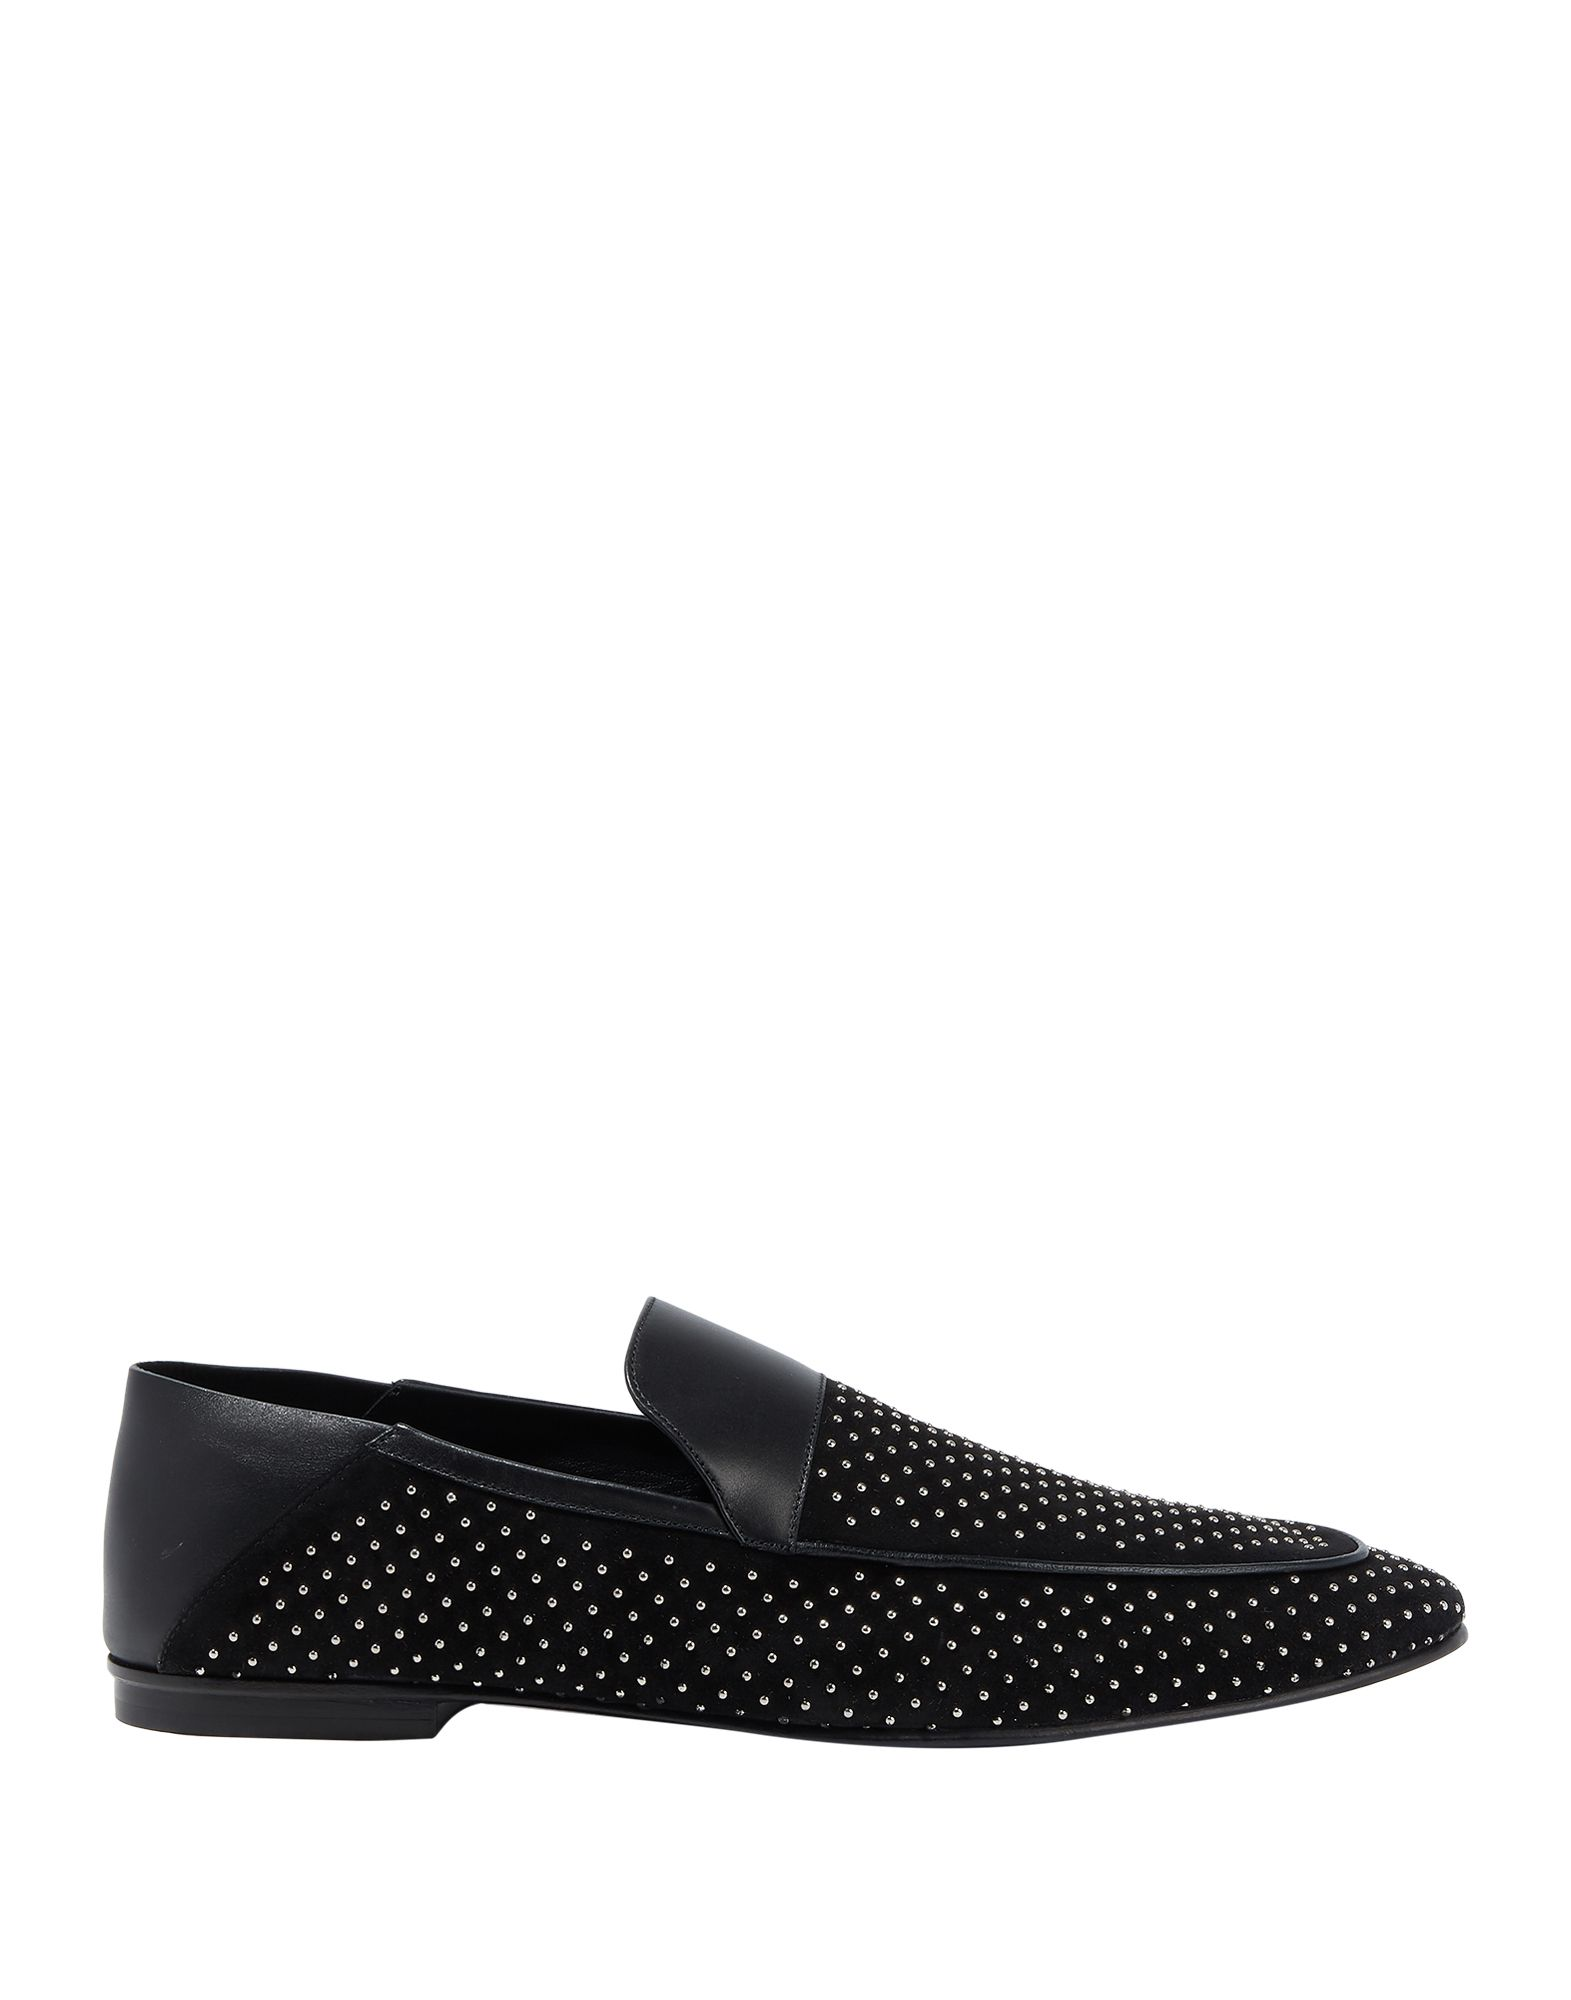 BALMAIN Loafers. studs, solid color, round toeline, leather lining, leather sole, flat, contains non-textile parts of animal origin, small sized. Calfskin